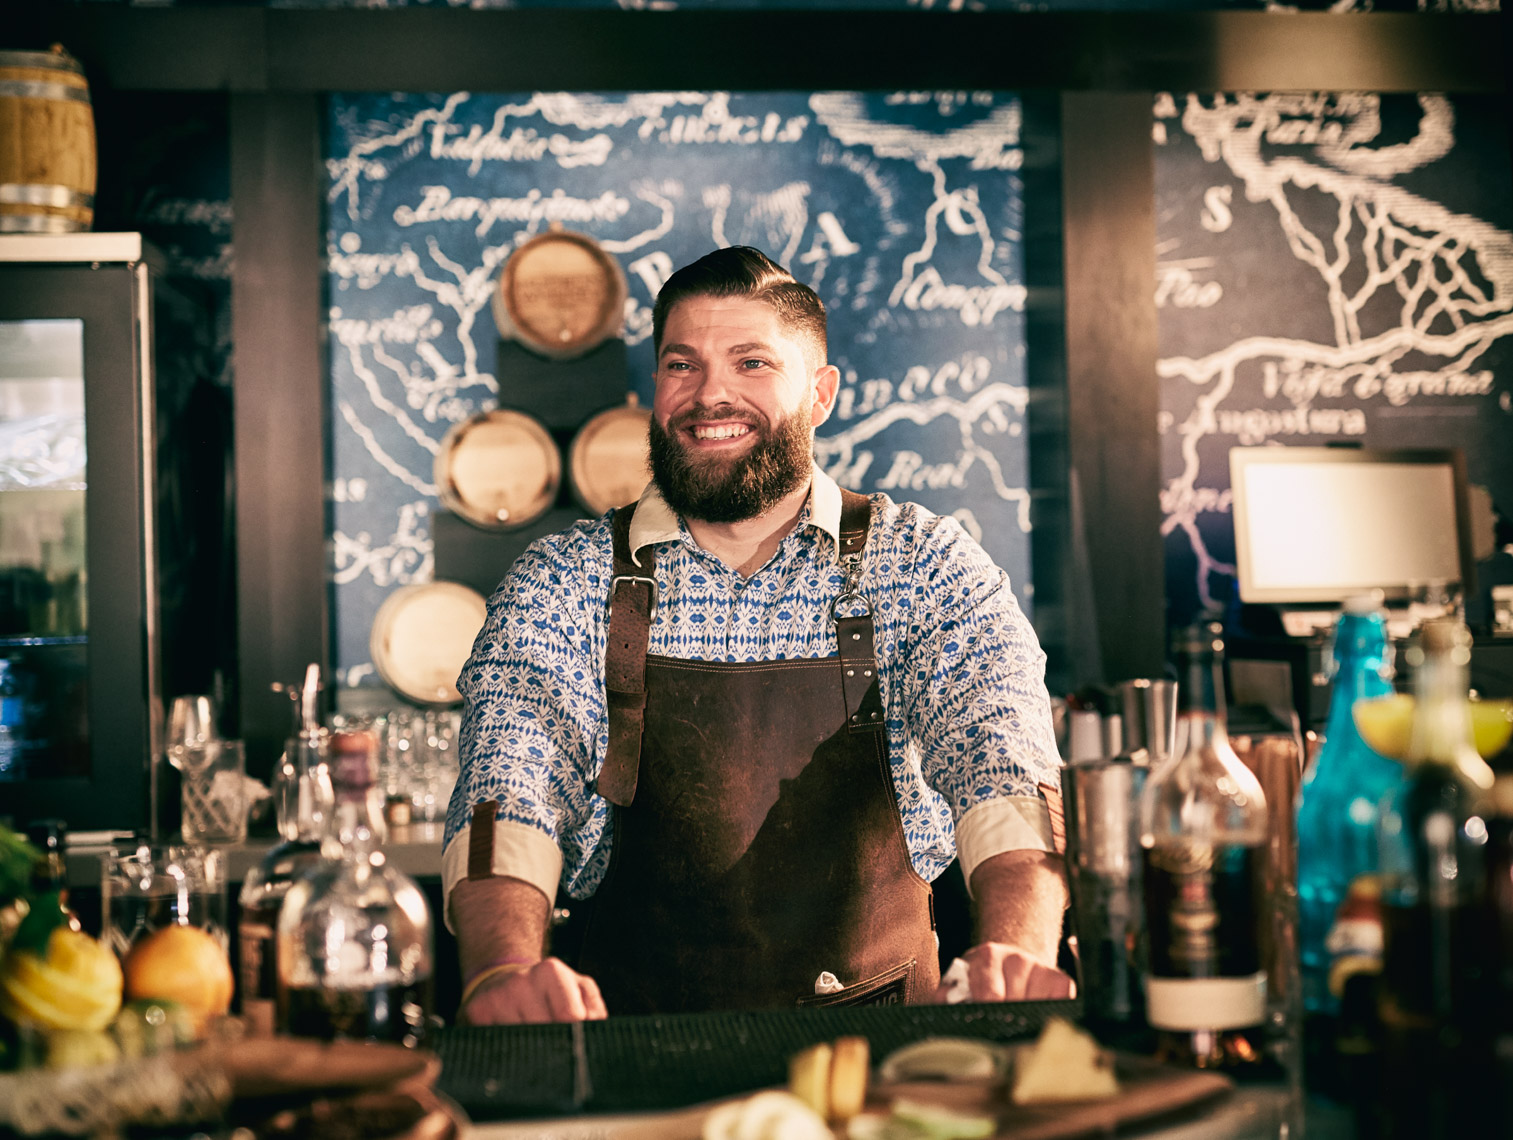 Bearded Male bartender in apron behind bar smiling